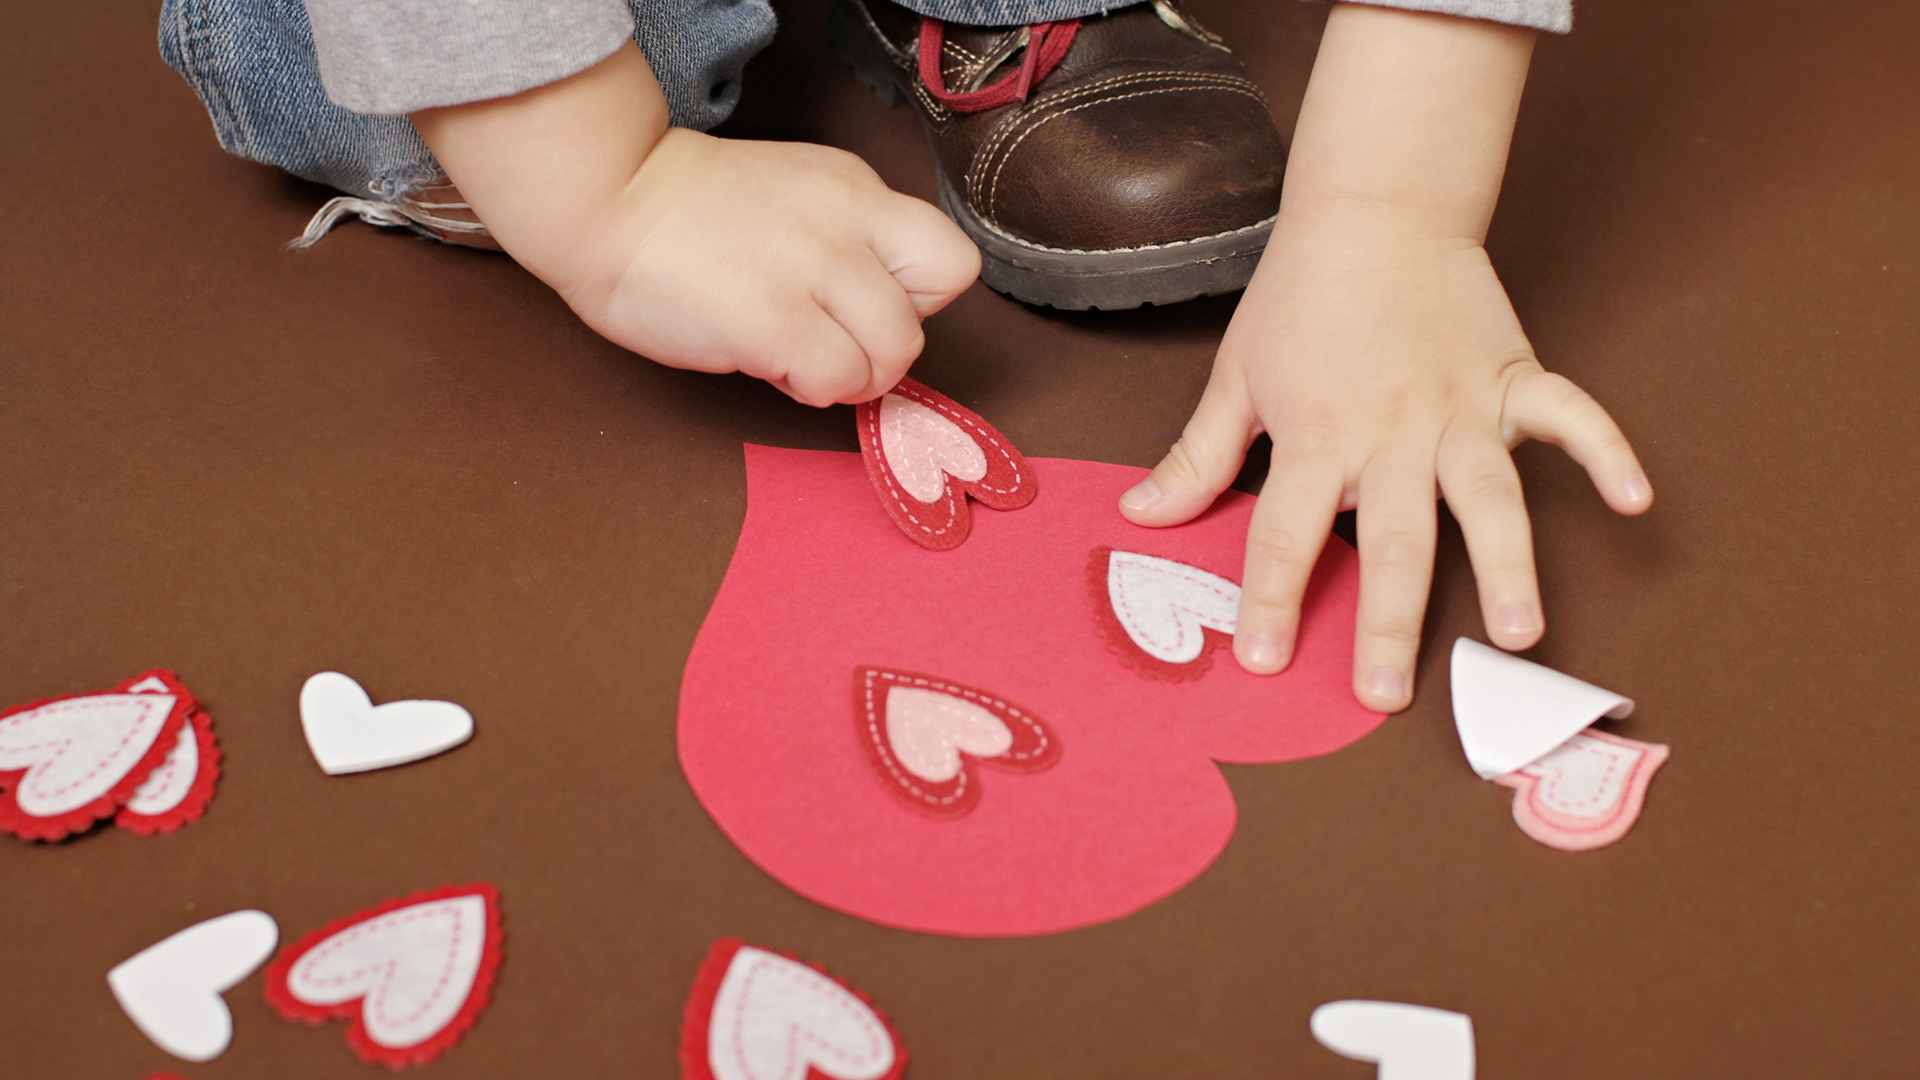 valentines day crafts for kids 7 diy ideas for families todaycom - Valentine Day Crafts For Kids